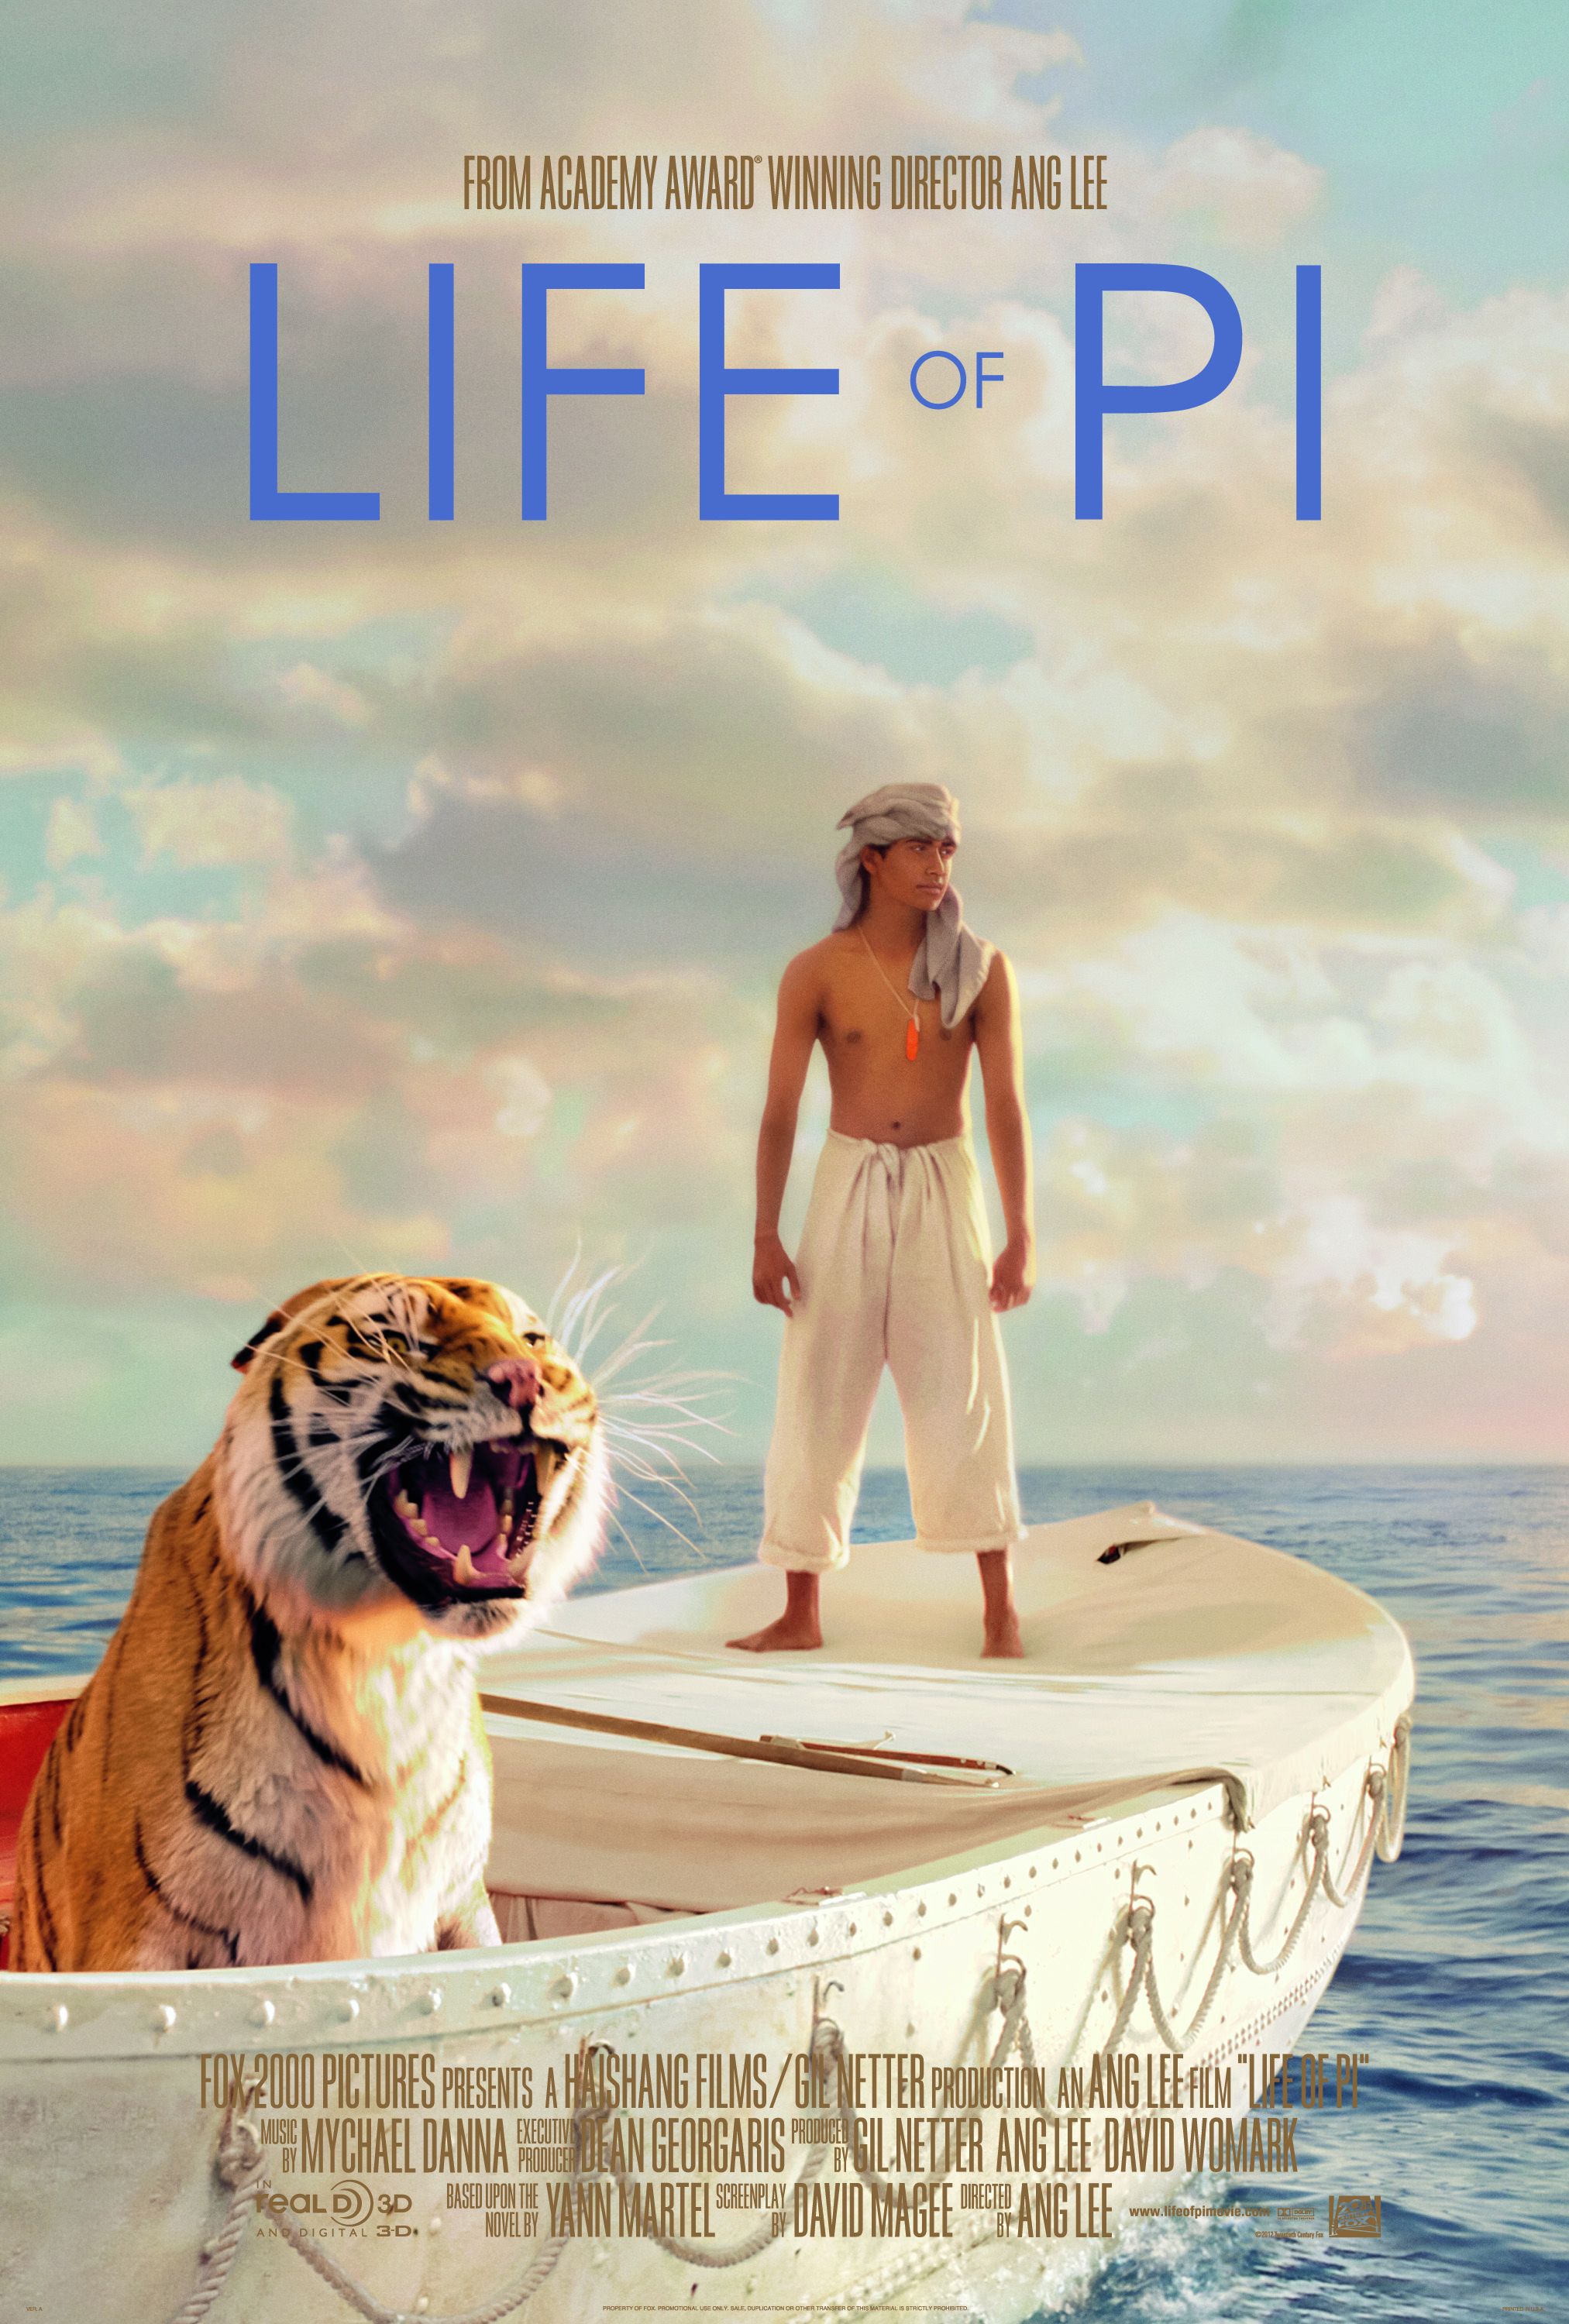 TODAY I WATCHED (TV-series, Movies, Cinema Playlists) 2013 - Page 38 Life-of-pi-poster-full1